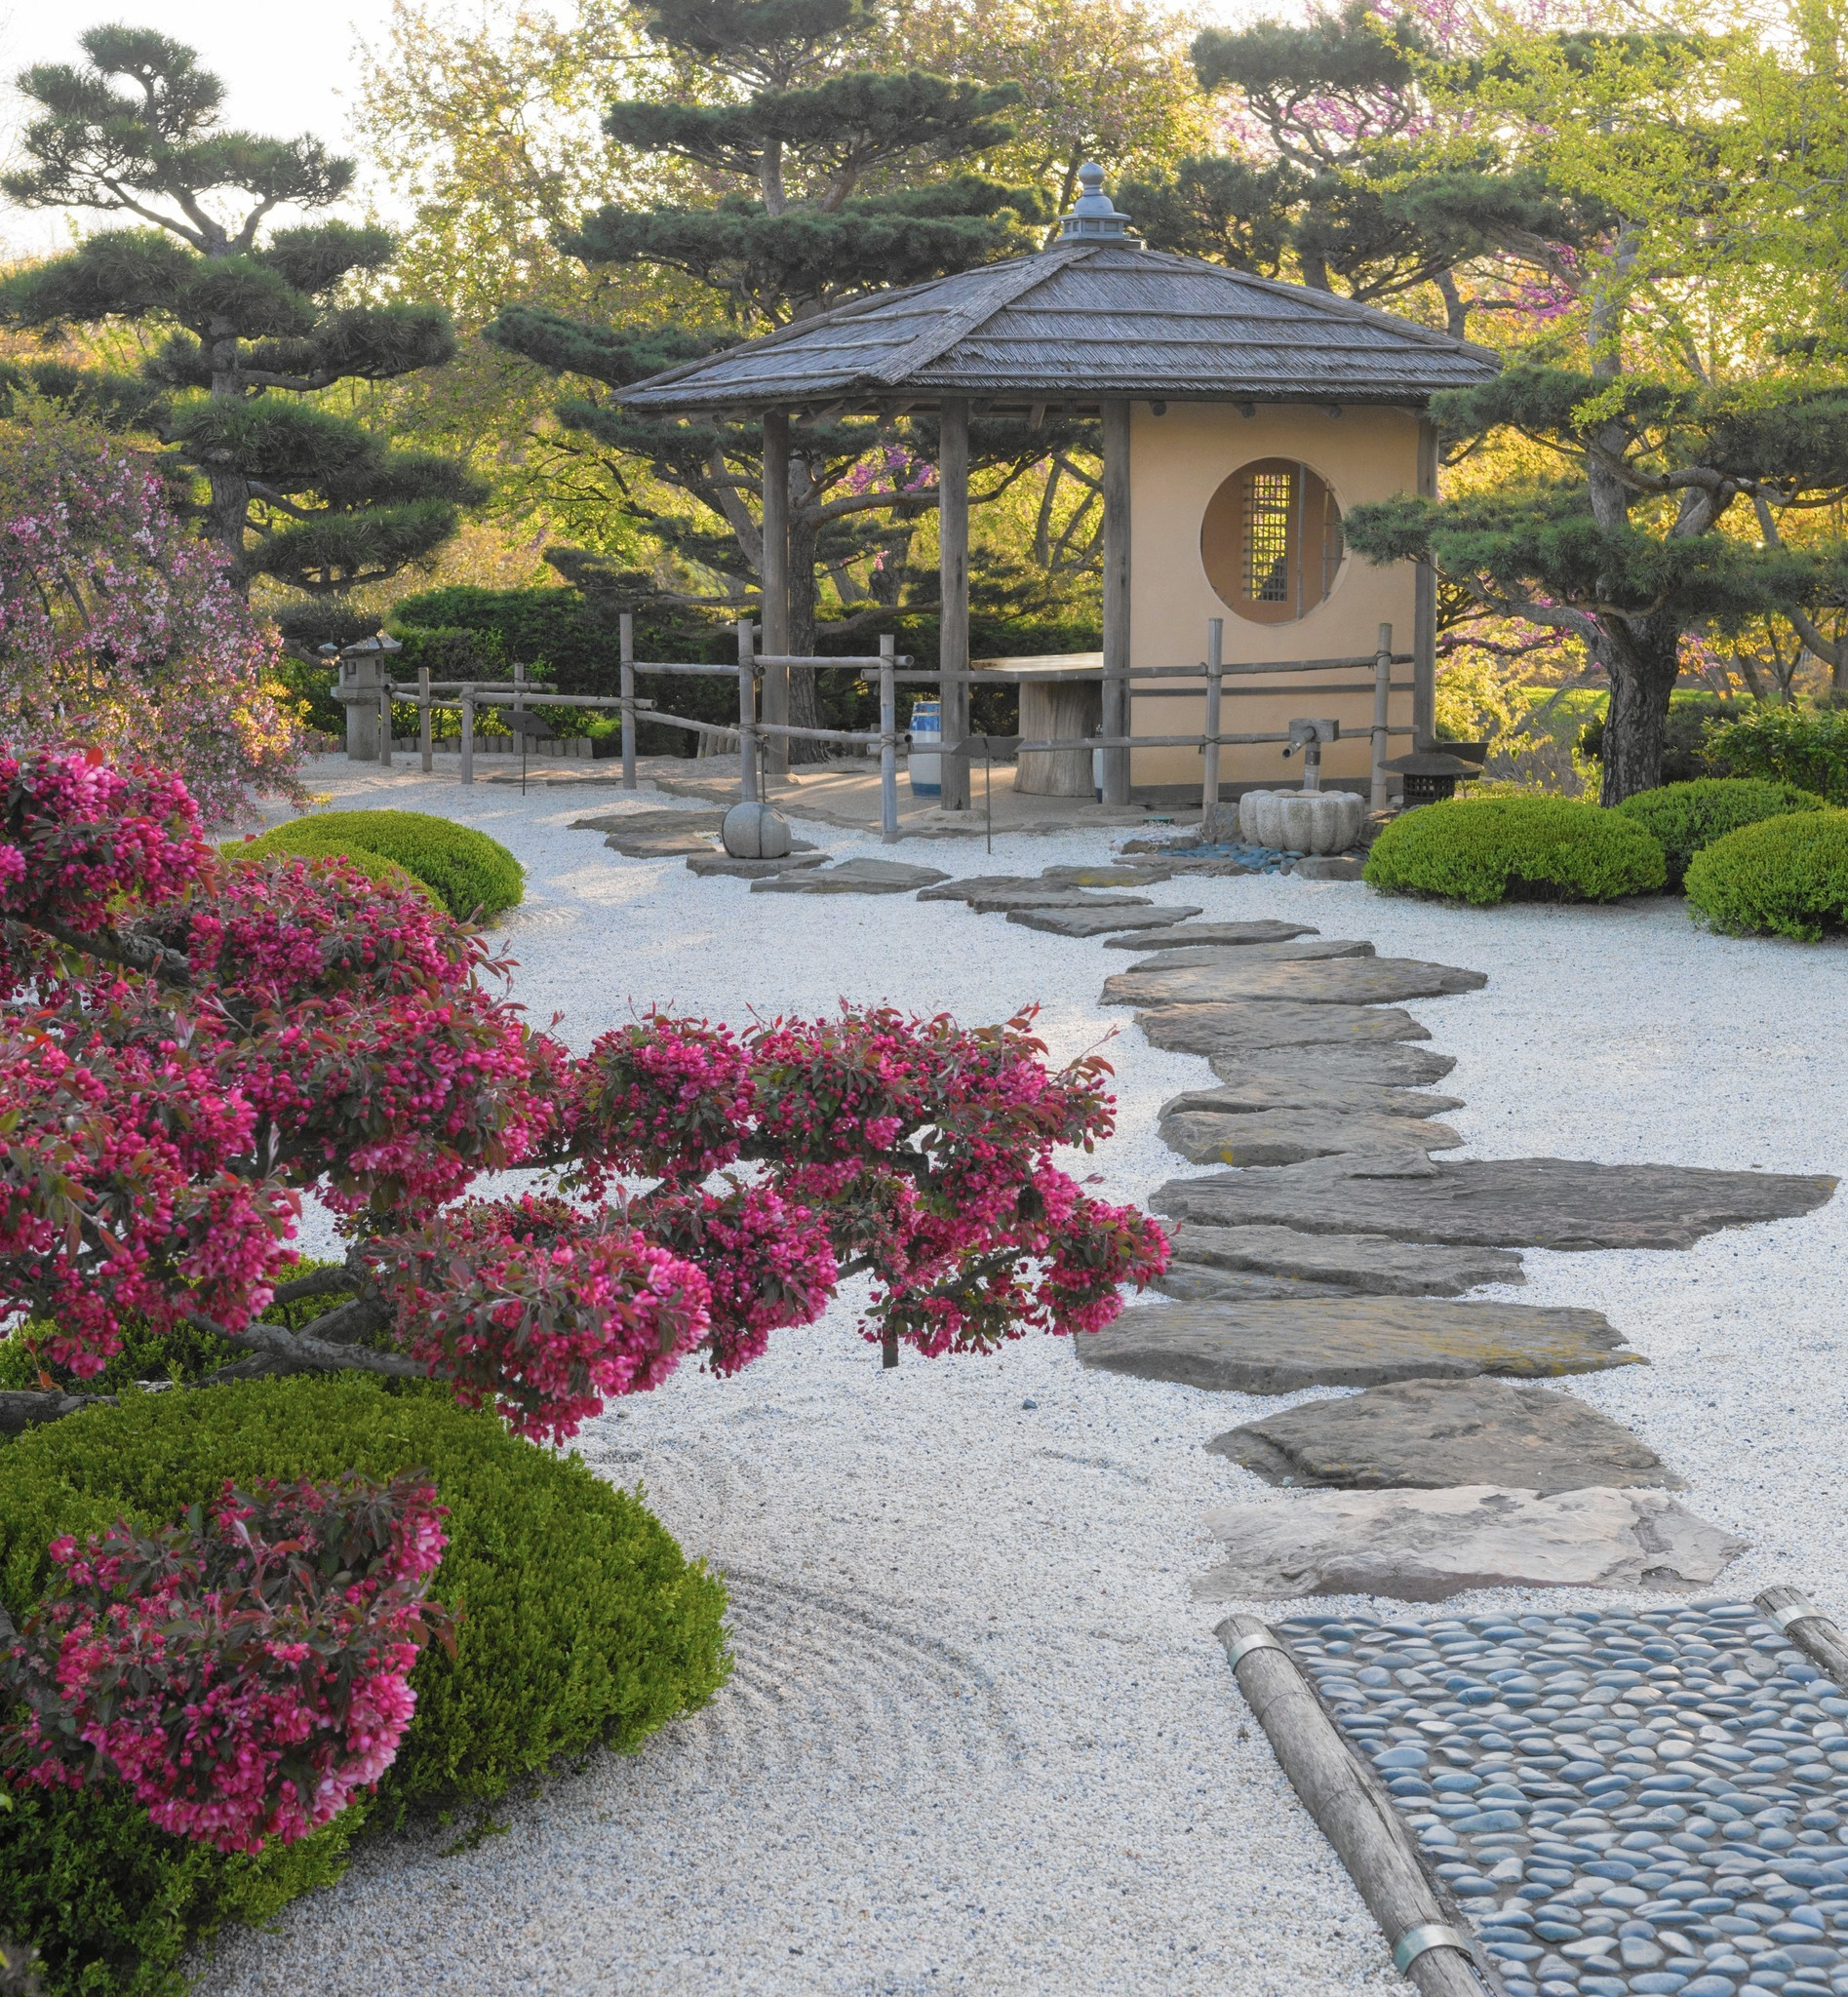 build a japanese tea house google search httpswwwgoogle - Japanese Garden